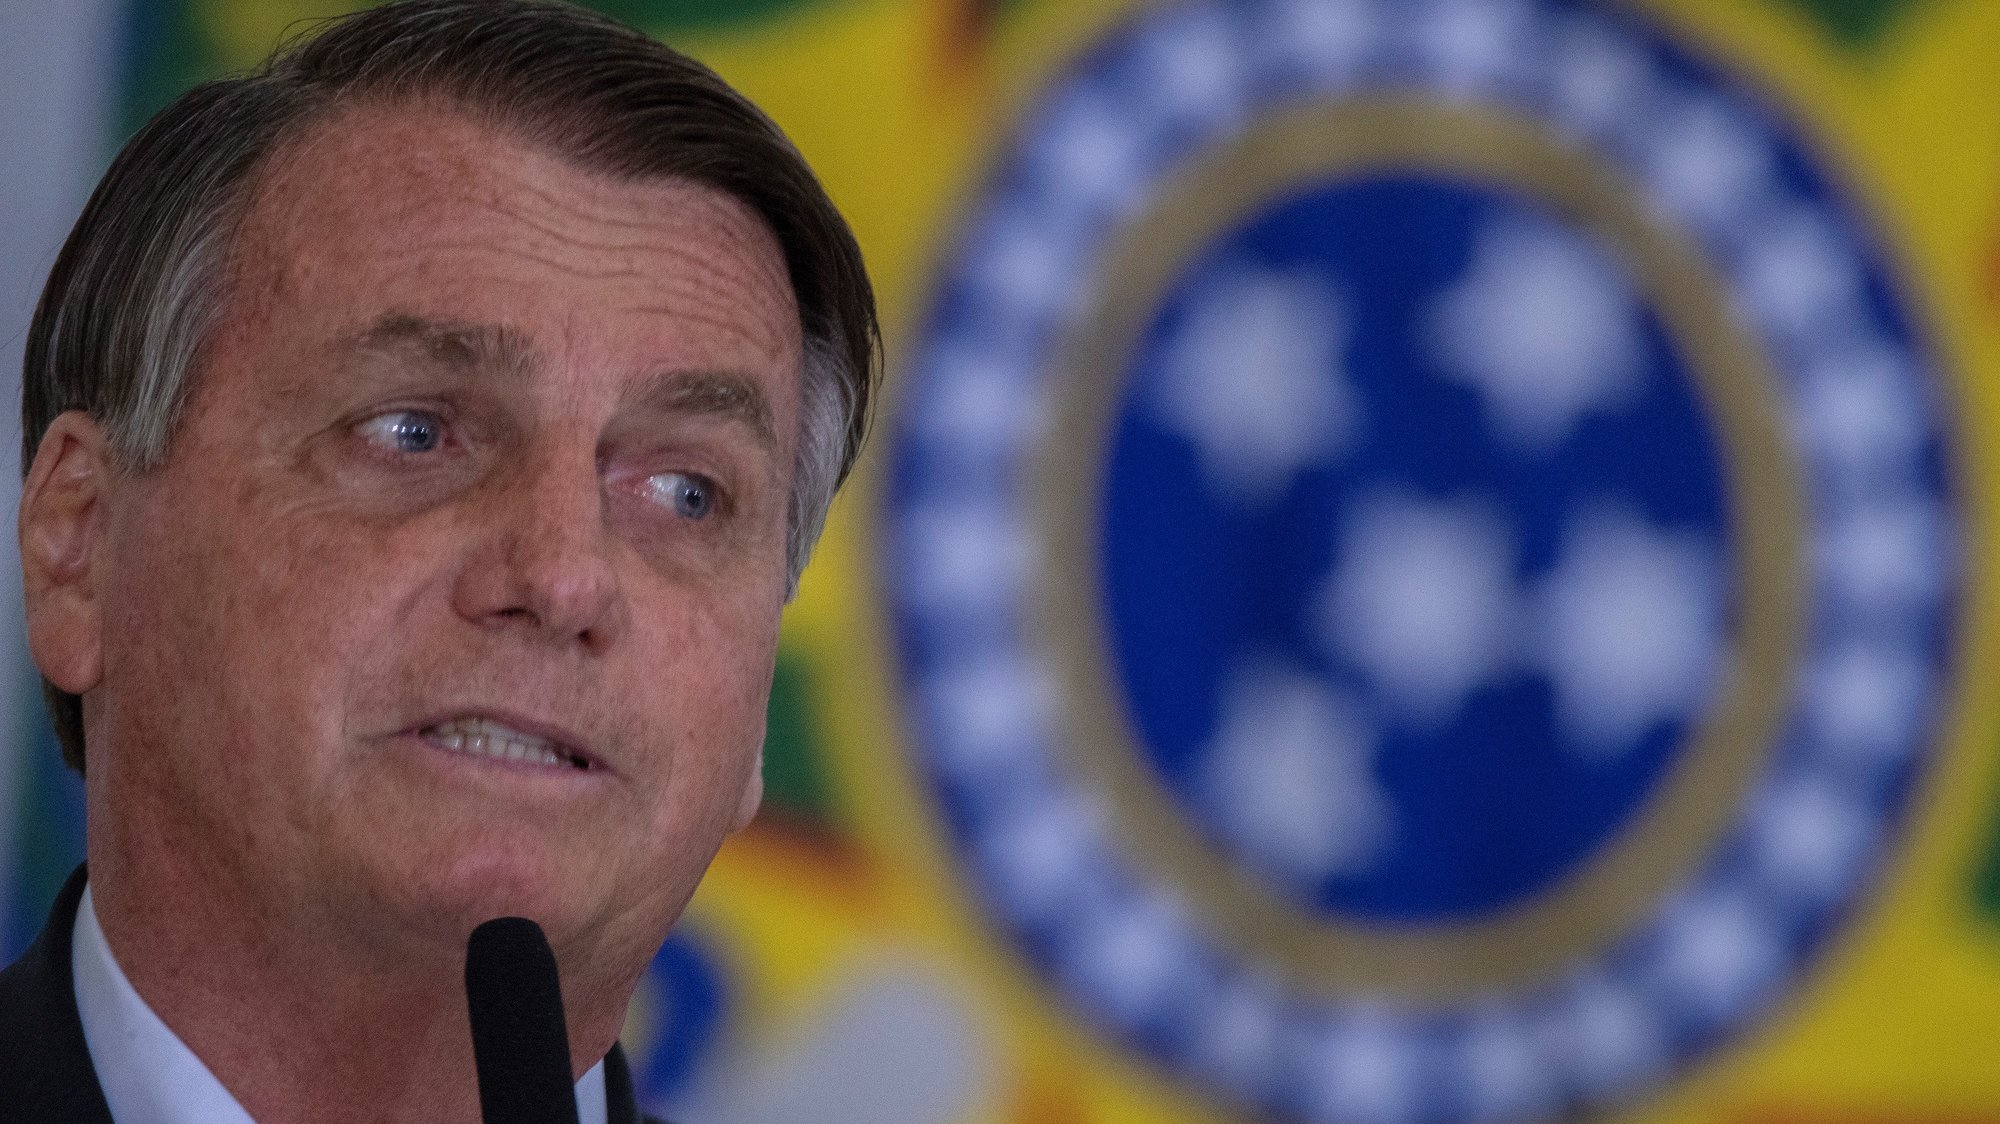 epa09469929 The President of Brazil, Jair Bolsonaro, participates in the Call for Progress in the 'Casa Verde e Amarela' Program, at the Palacio do Planalto, in the city of Brasilia, Brazil, 15 September 2021. Bolsonaro reiterated this 15 September that the 'ancestral right' that the indigenous people claim over the lands could lead to 'losing a Germany and a Spain together' and cause 'a catastrophe' to the country's agriculture. The president insisted on the matter on the eve of the Supreme Court continuing a trial in which it must rule in relation to the so-called 'time frame', which only recognizes as indigenous land that which the native peoples occupied on 05 October 1988, when the current Brazilian Constitution was promulgated.  EPA/Joedson Alves